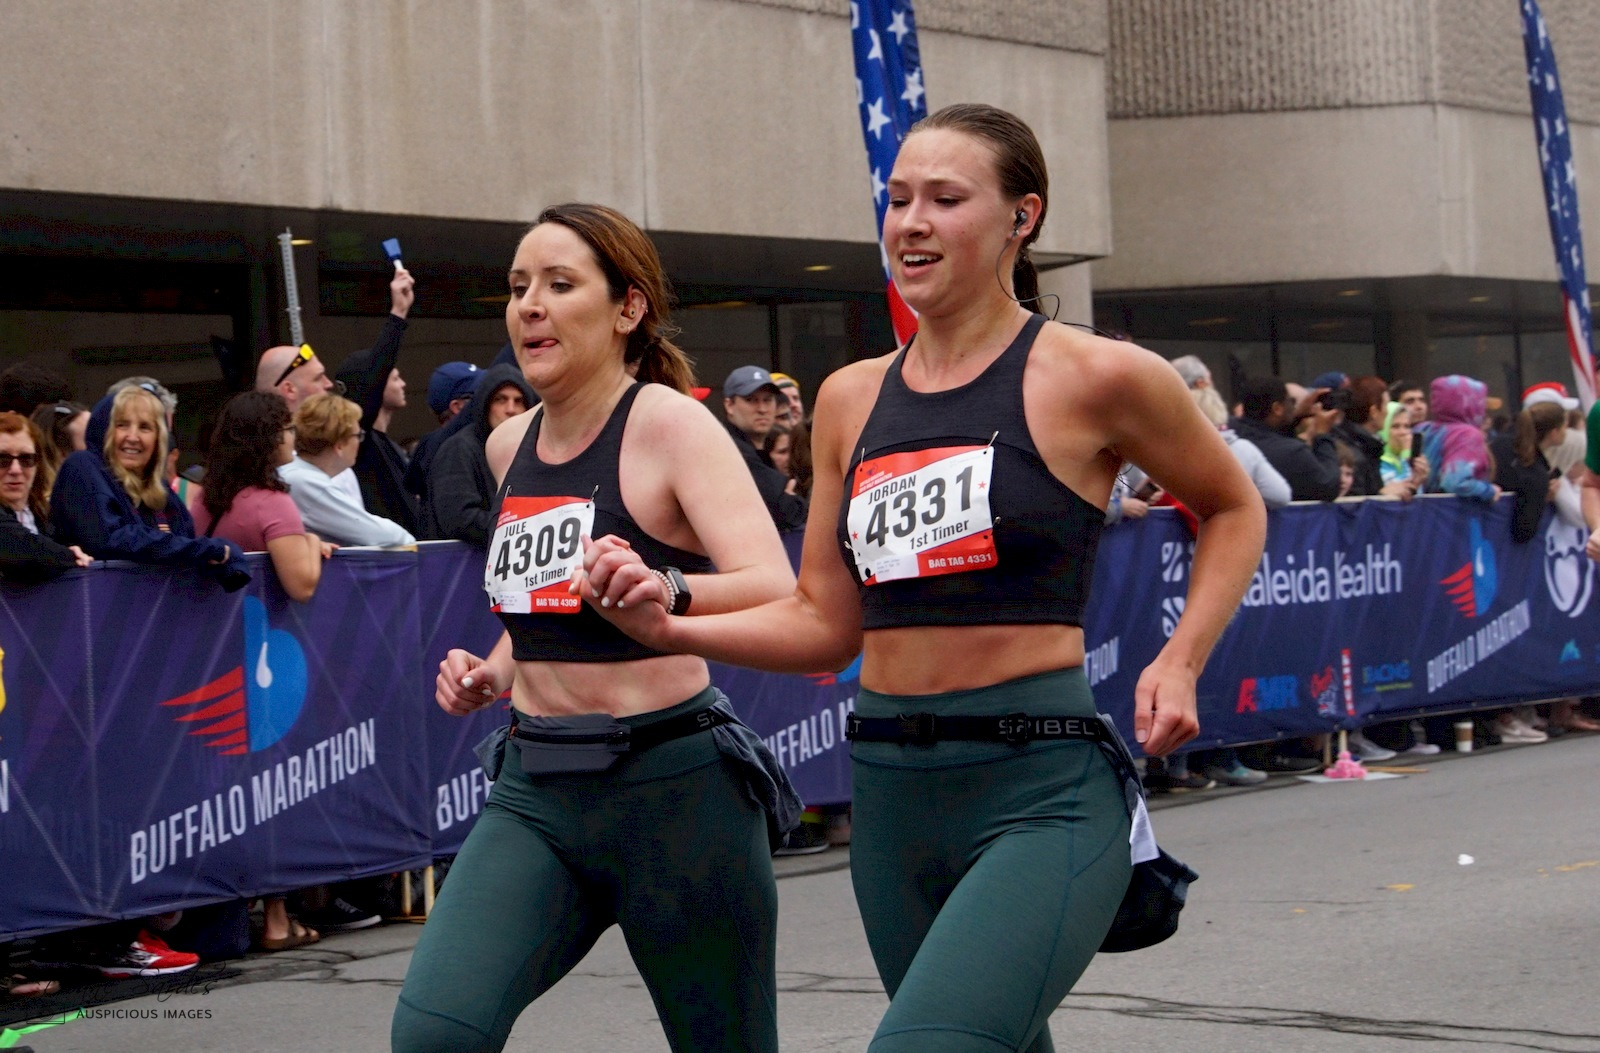 Buffalo Marathon weekend 695.jpg